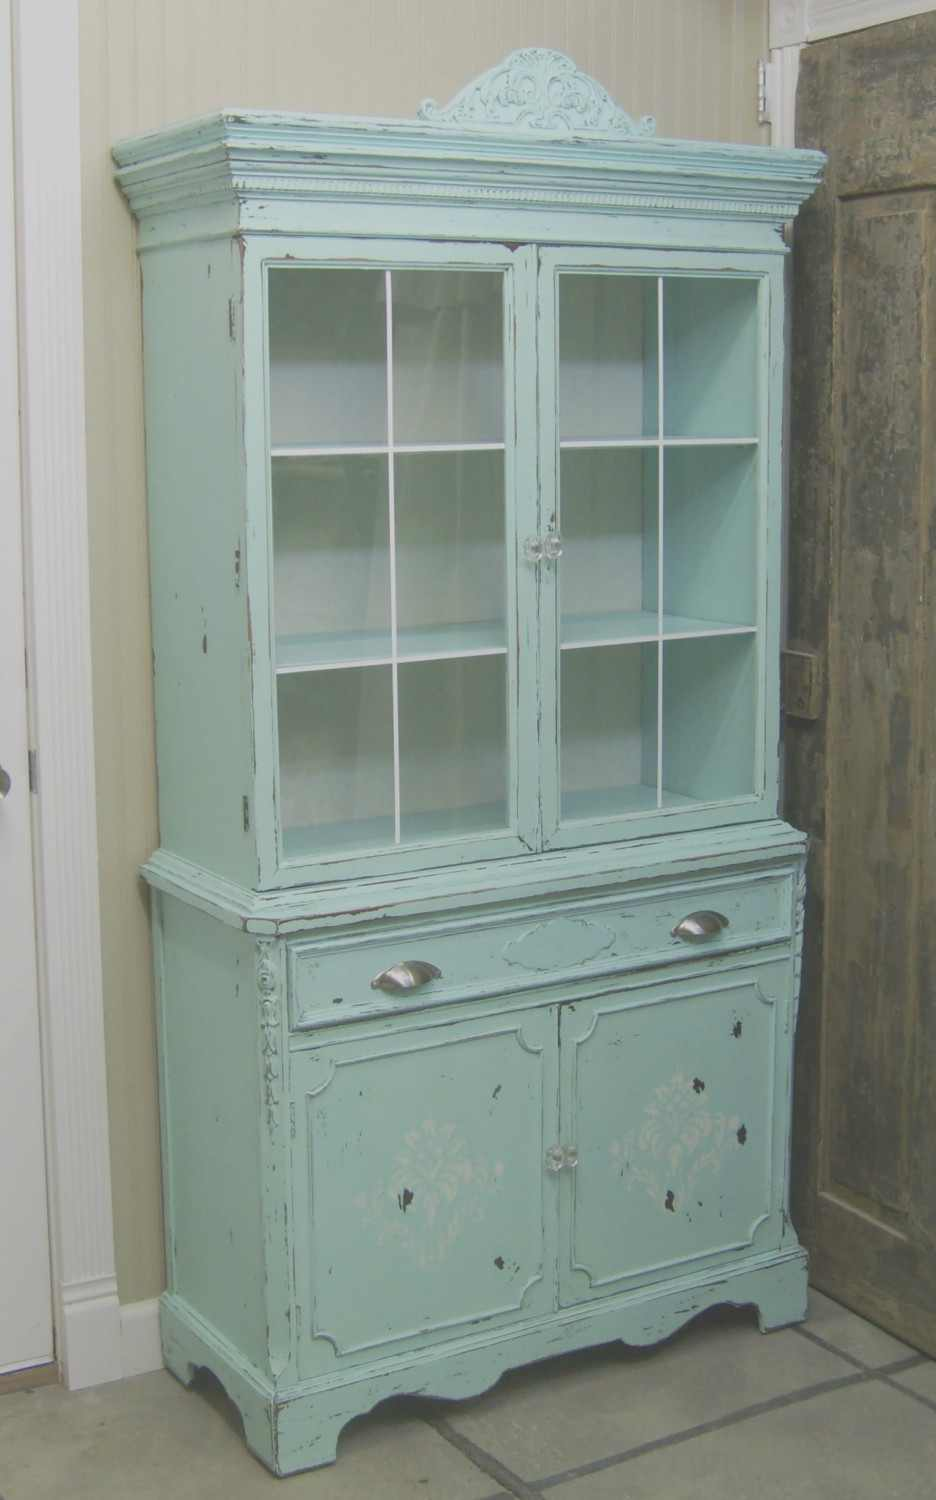 The Recycled Rose The Never Ending Aqua China Cabinet